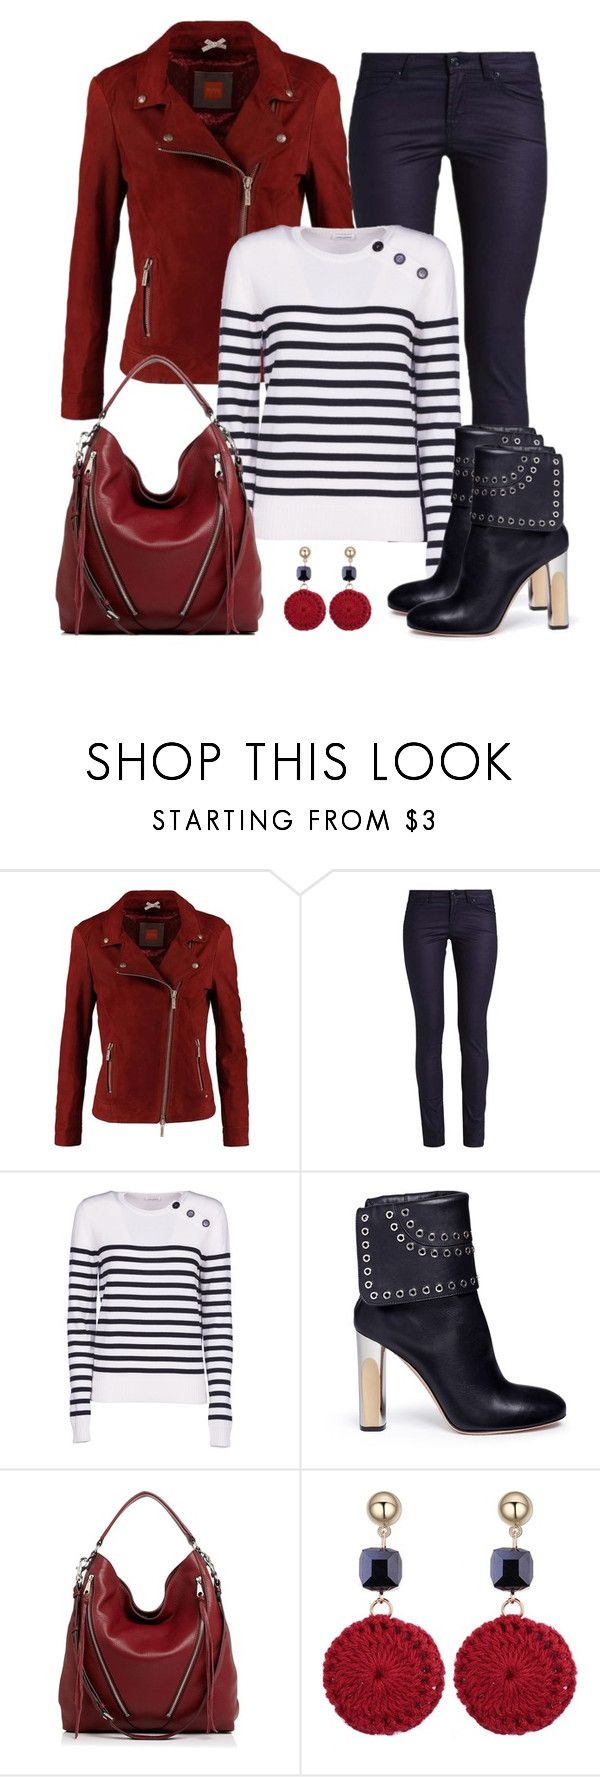 """""""Untitled #1552"""" by gallant81 ❤ liked on Polyvore featuring BOSS Orange, Yves Saint Laurent, Alexander McQueen and Rebecca Minkoff"""